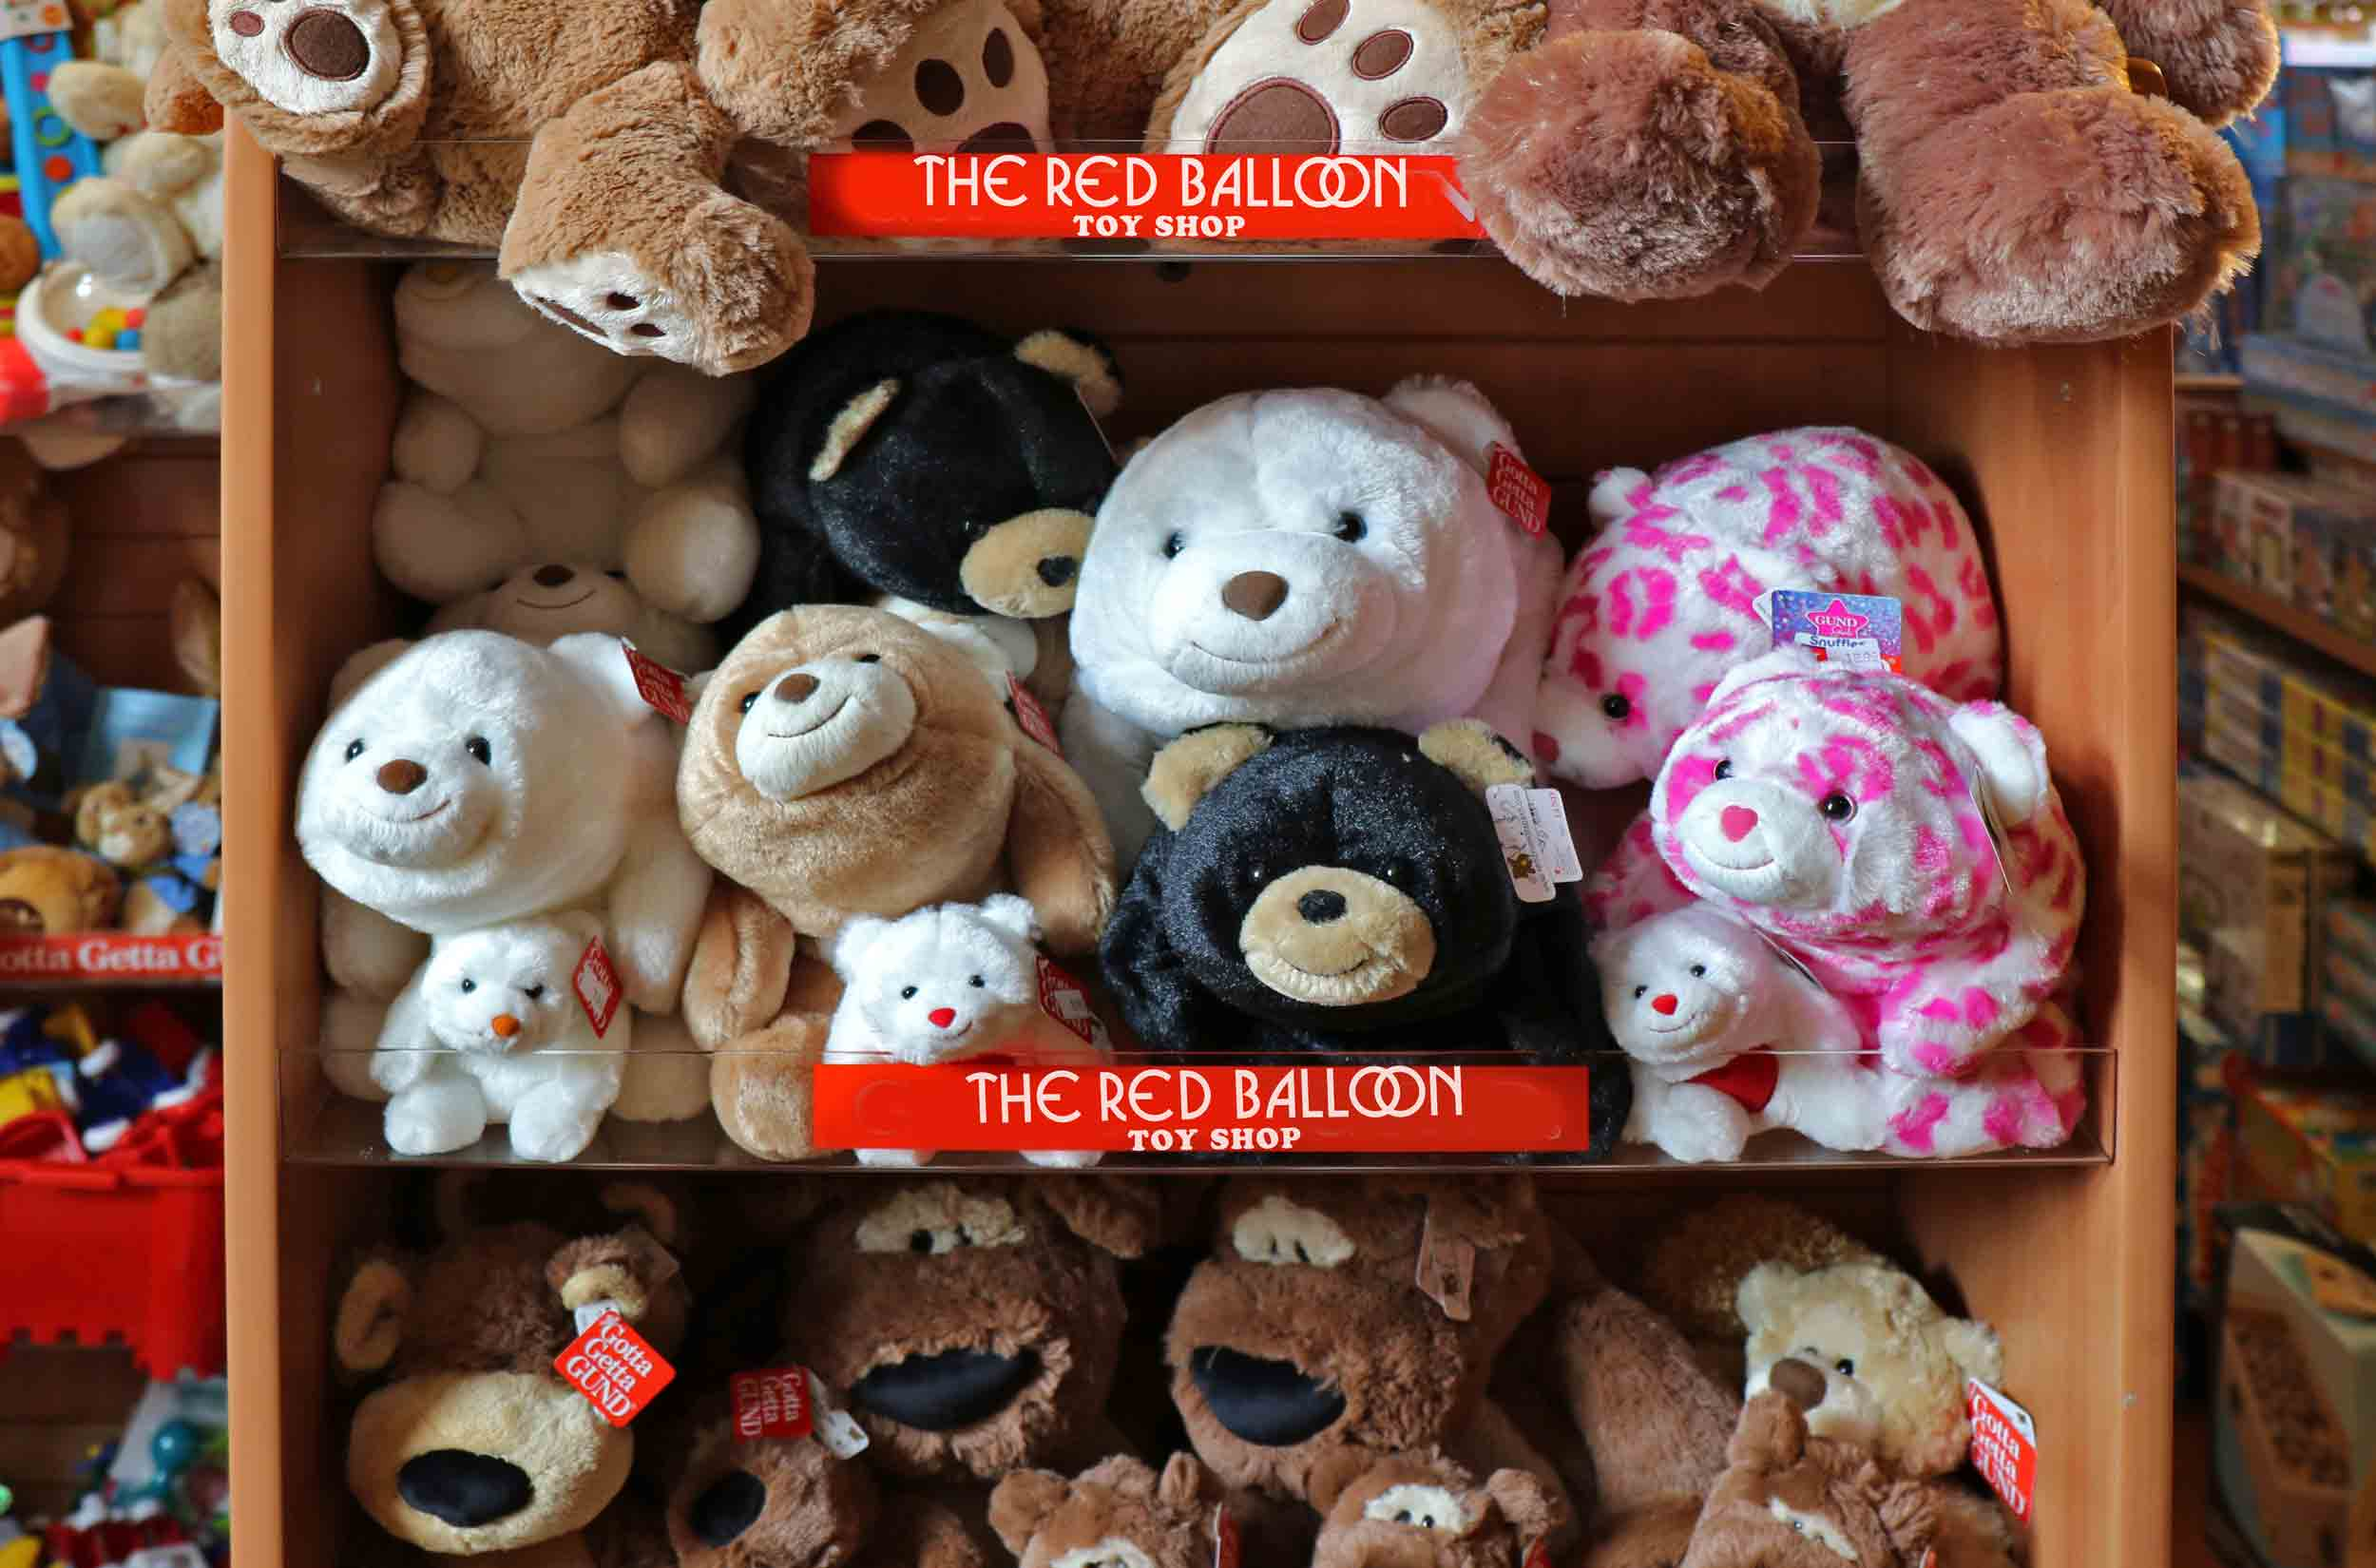 The-Red-Balloon-Toy-Shop-Stuffed-Animals-Cape-Cod.jpg